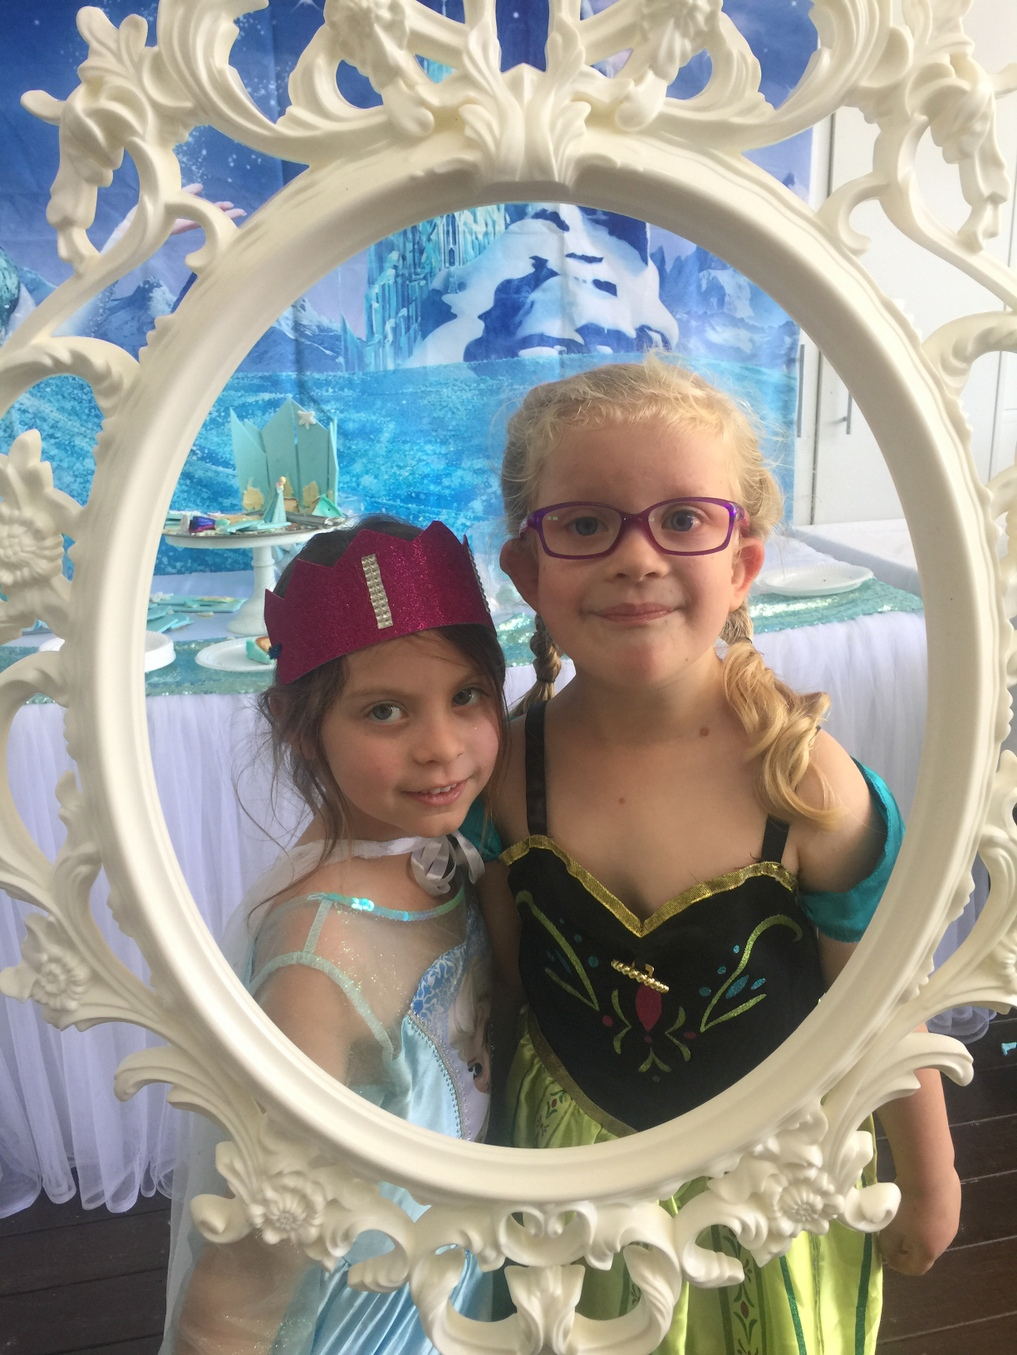 Frozen party ideas - frame as a picture prop